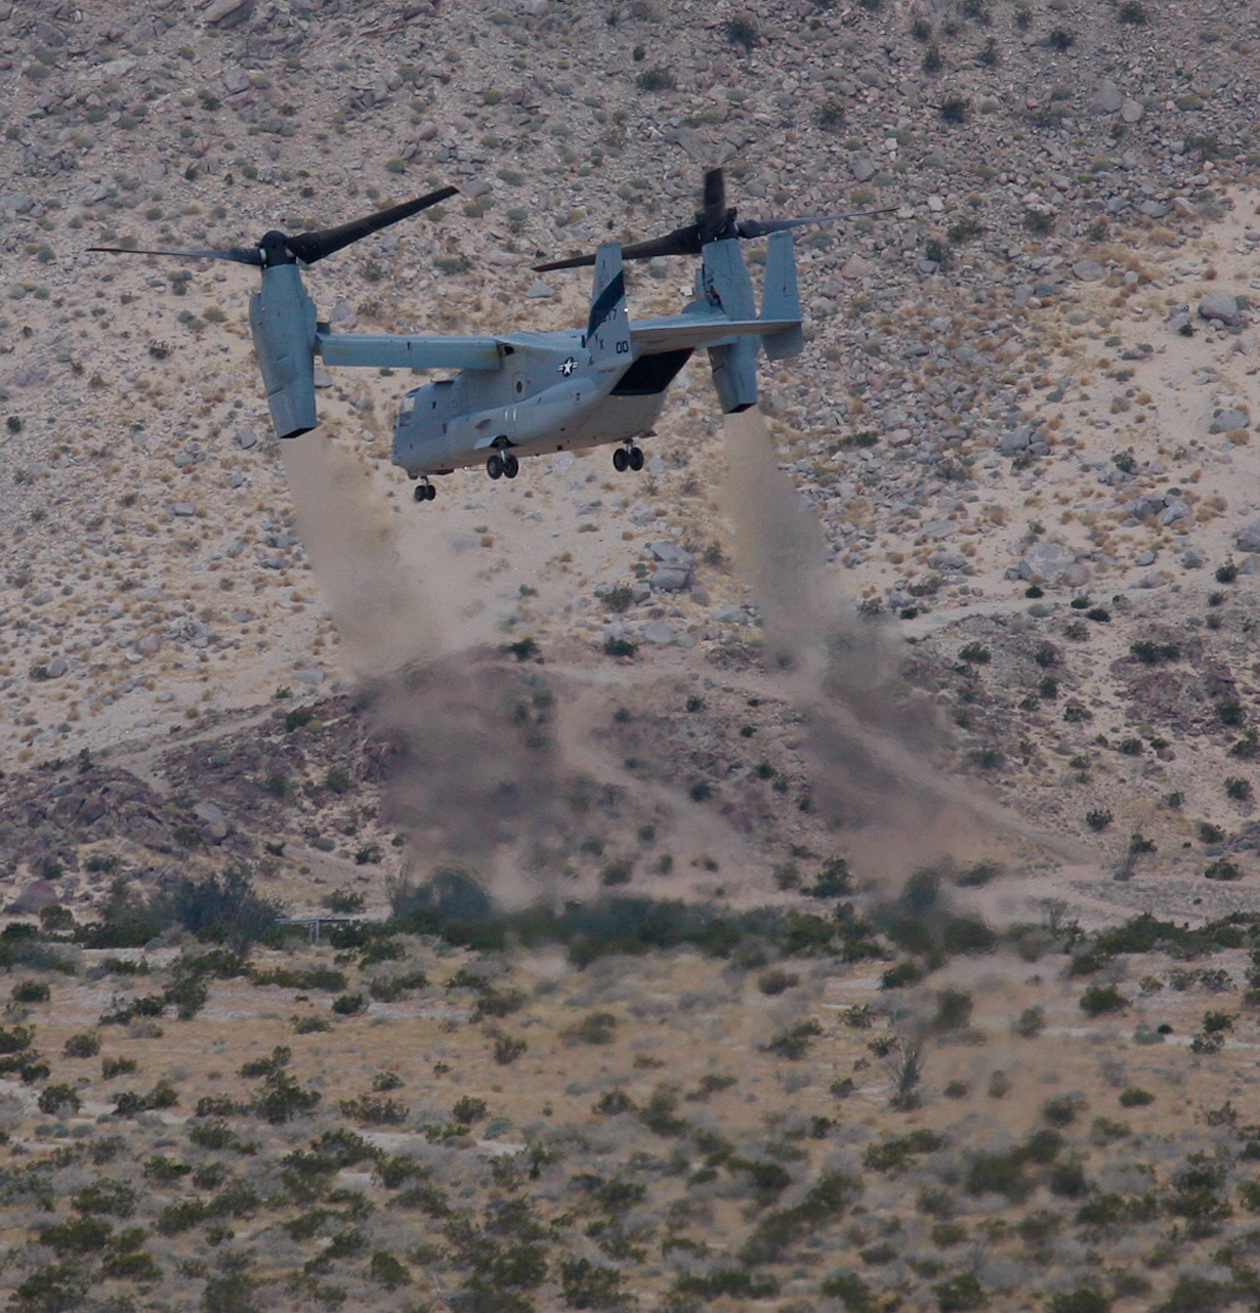 A Marines Plane was doing touch and goes on the desert just before Anza Borrego.  The idea is to have a shutter speed set to 1/125 or less so that the props are a blur..... sorry, I shake too much to do that.